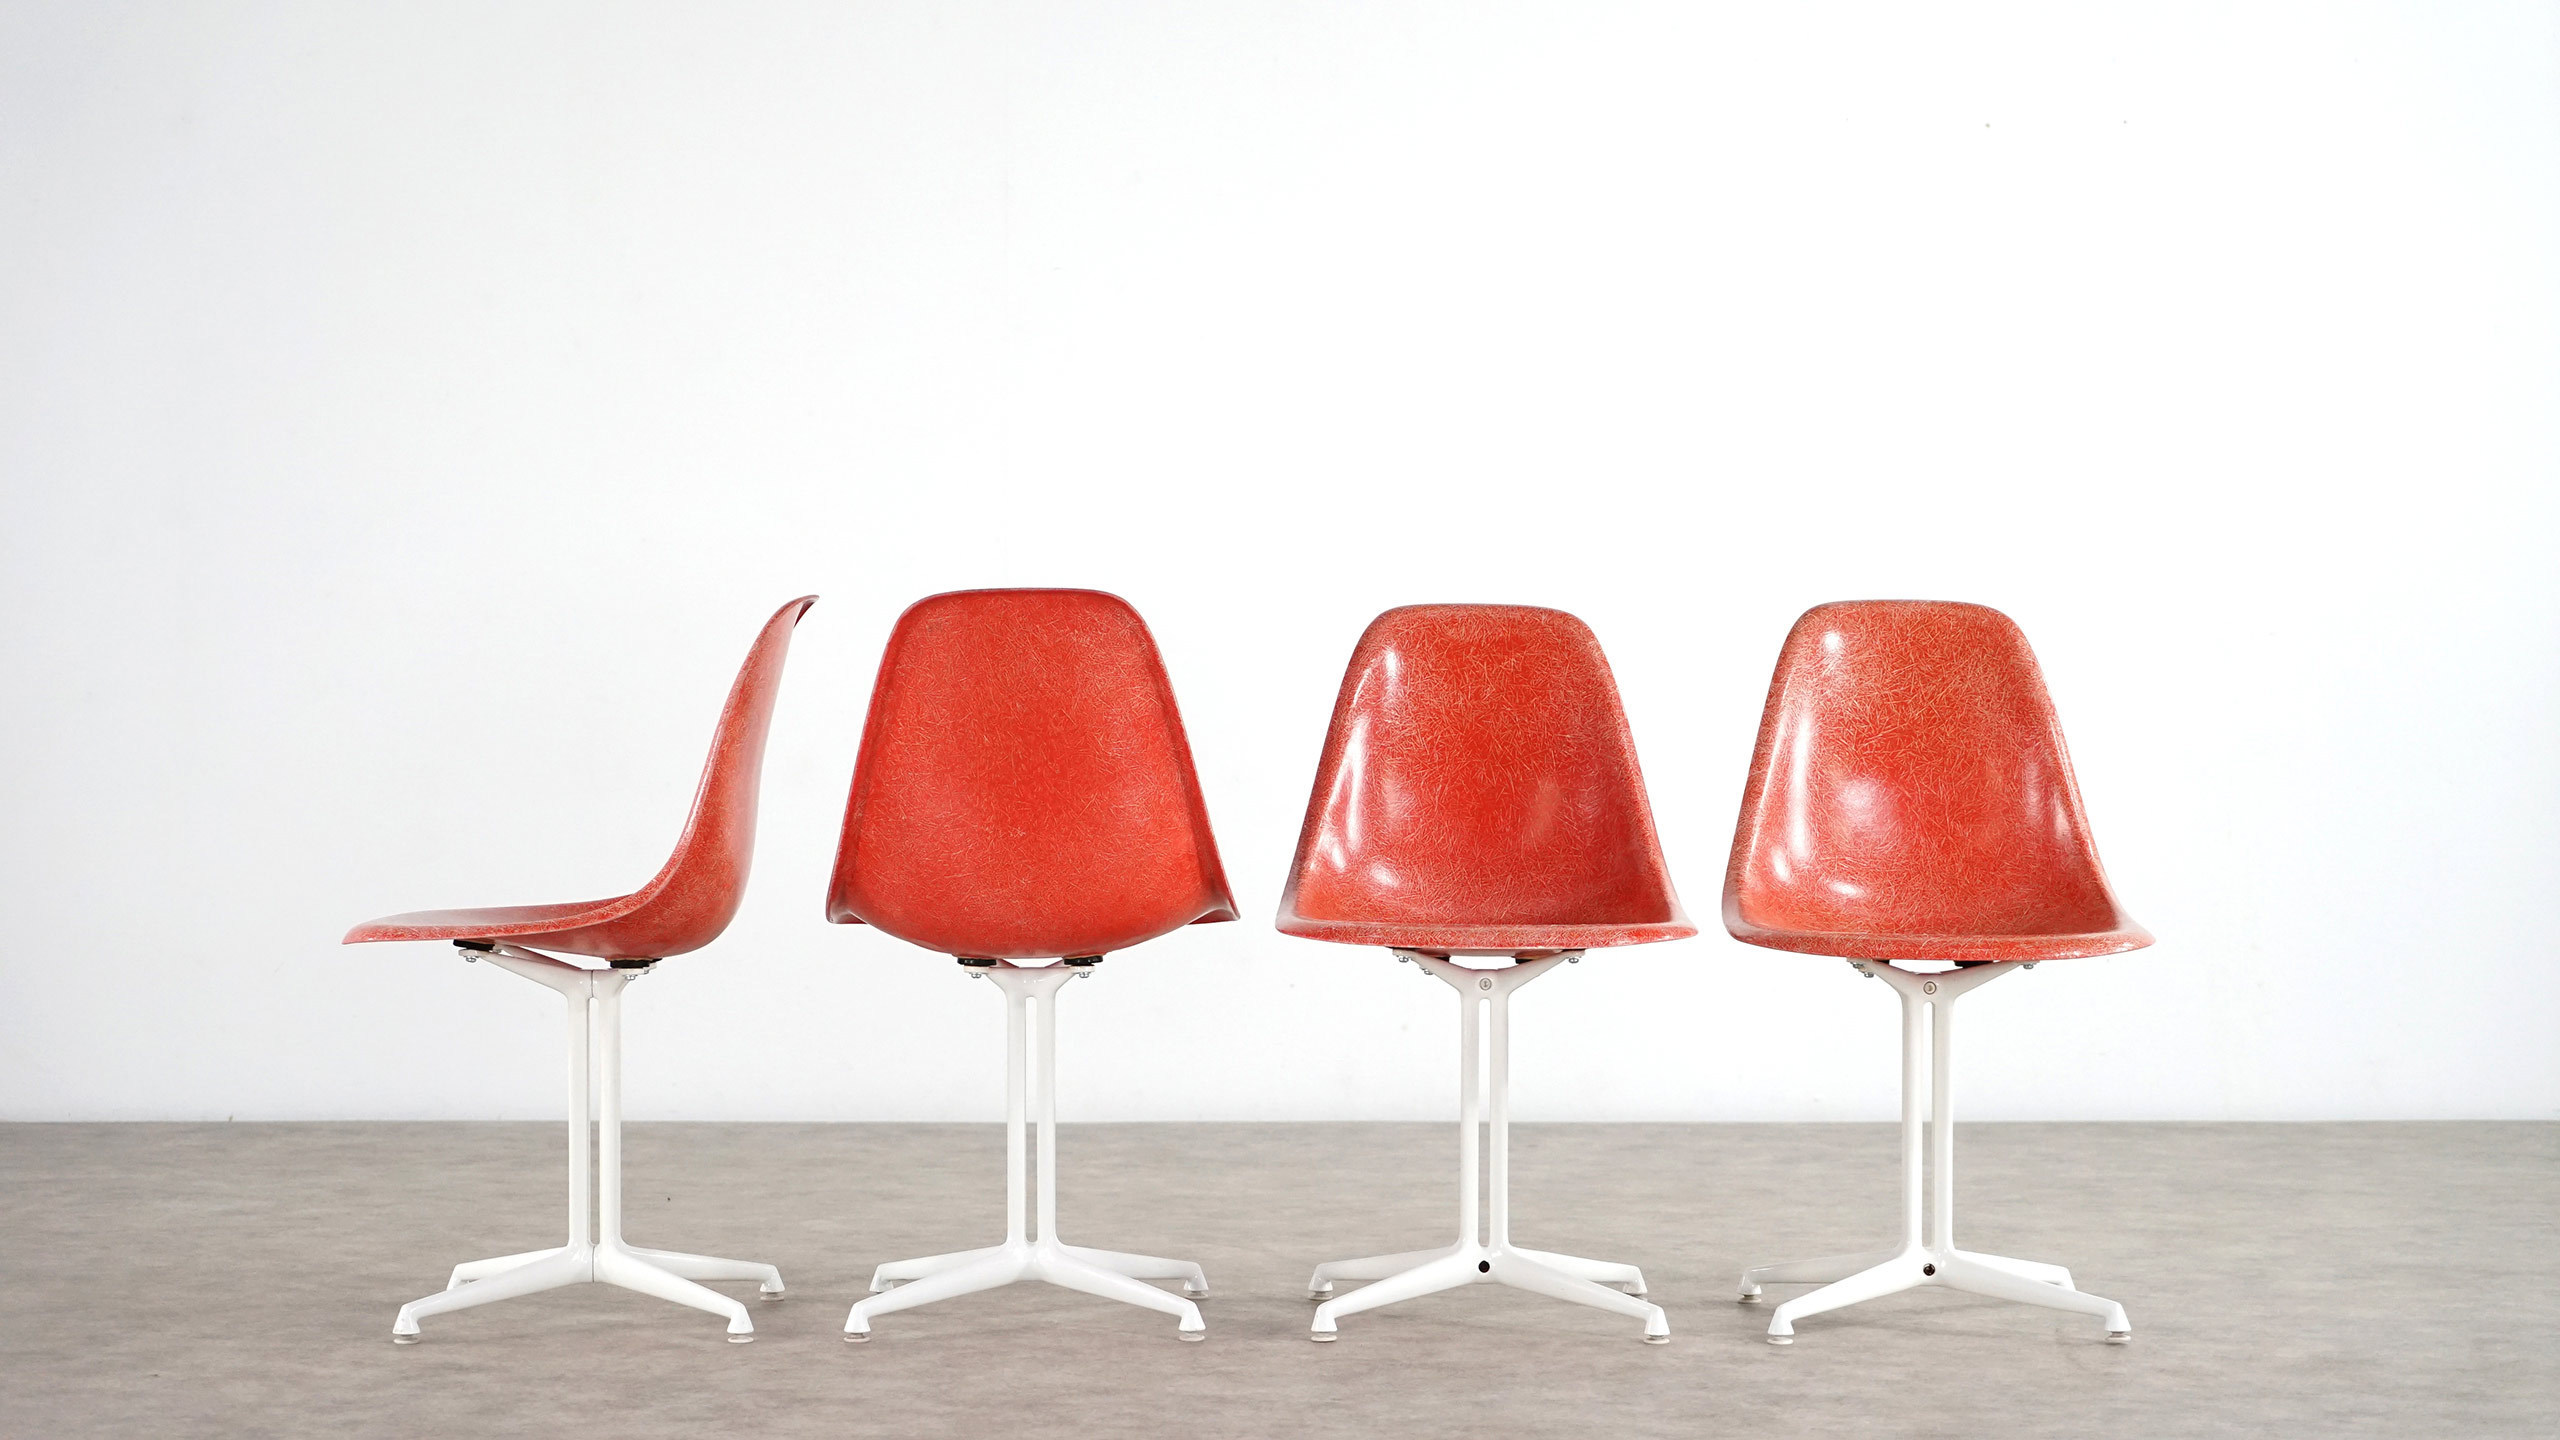 Charles eames set of 4 la fonda herman miller for Eames chair prix